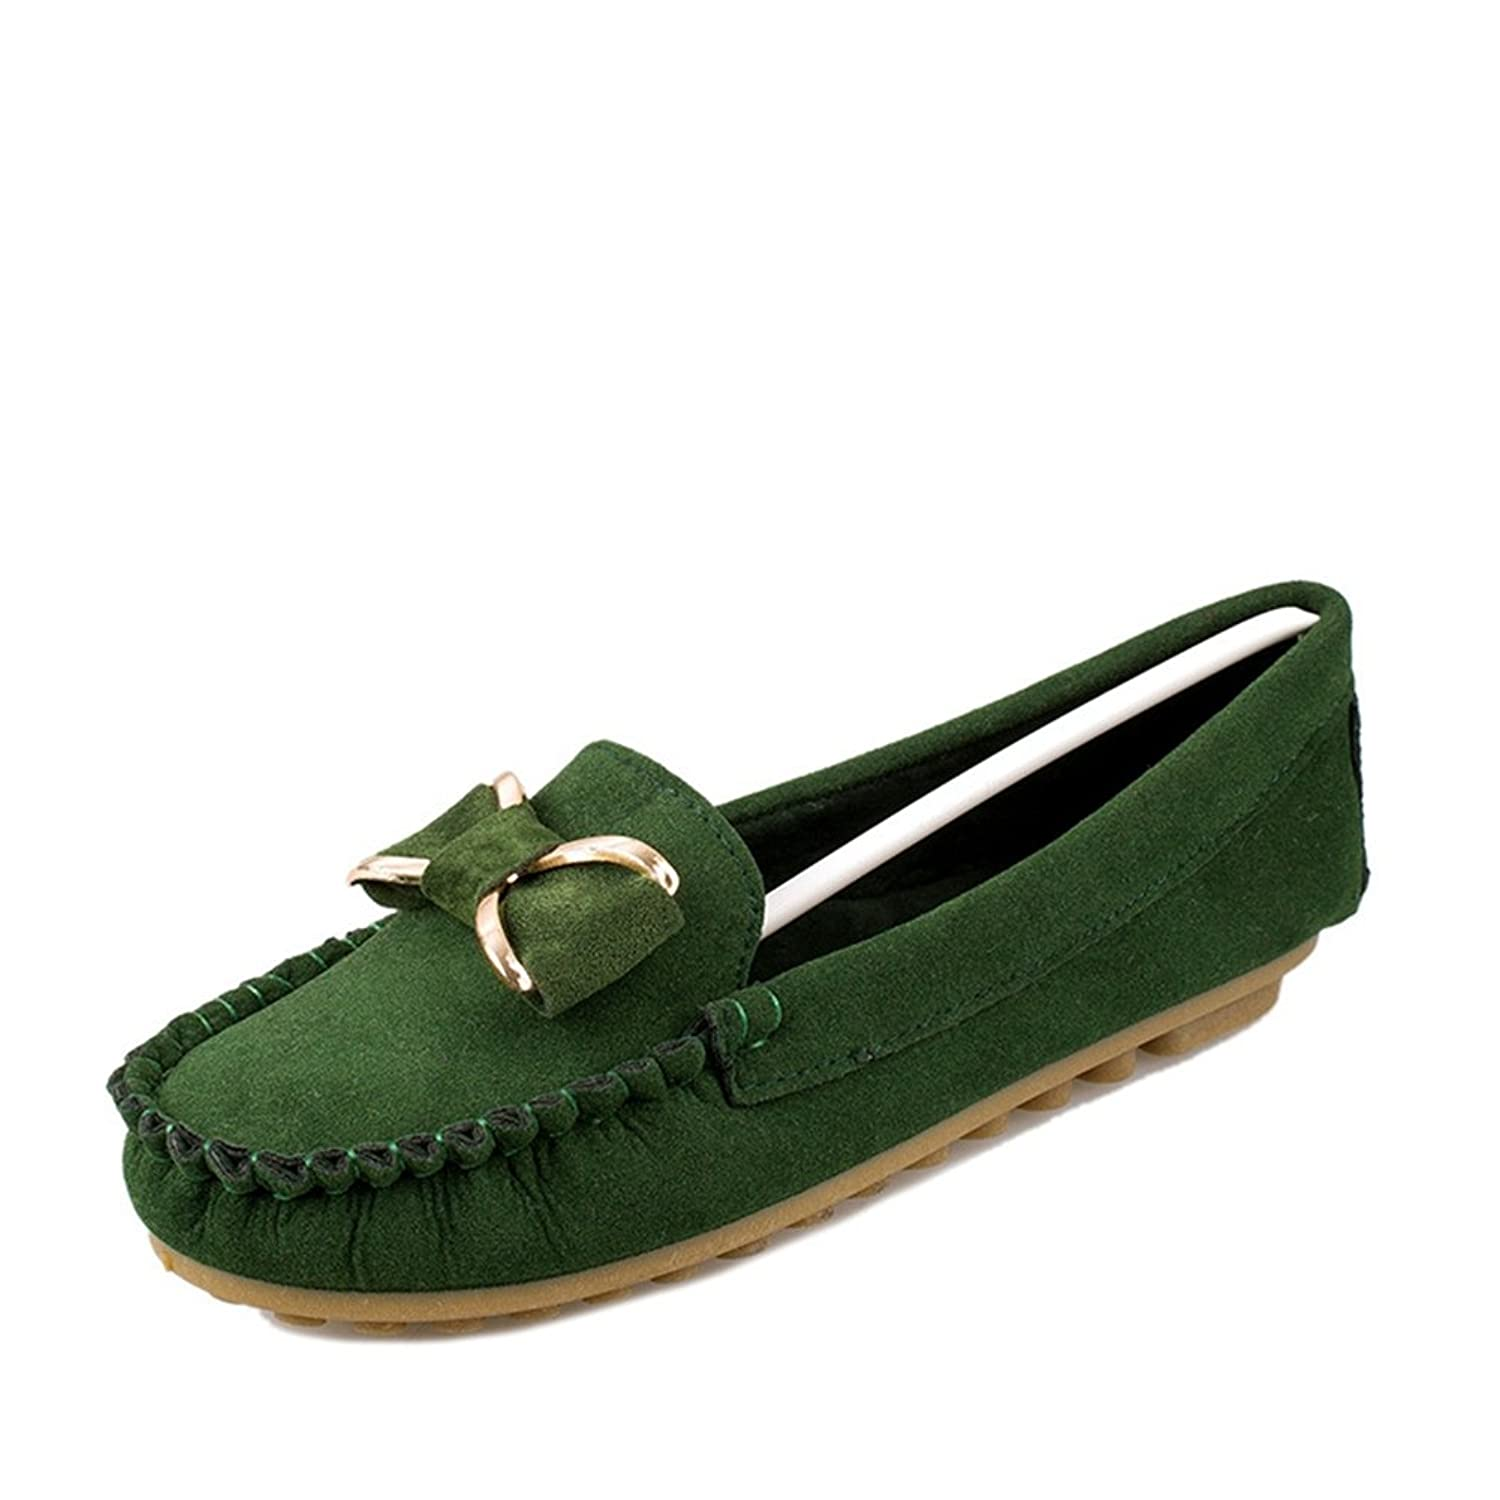 YINHAN Women's Bowknot Loafers Causal Driving Slip On Boat Flats Shoes